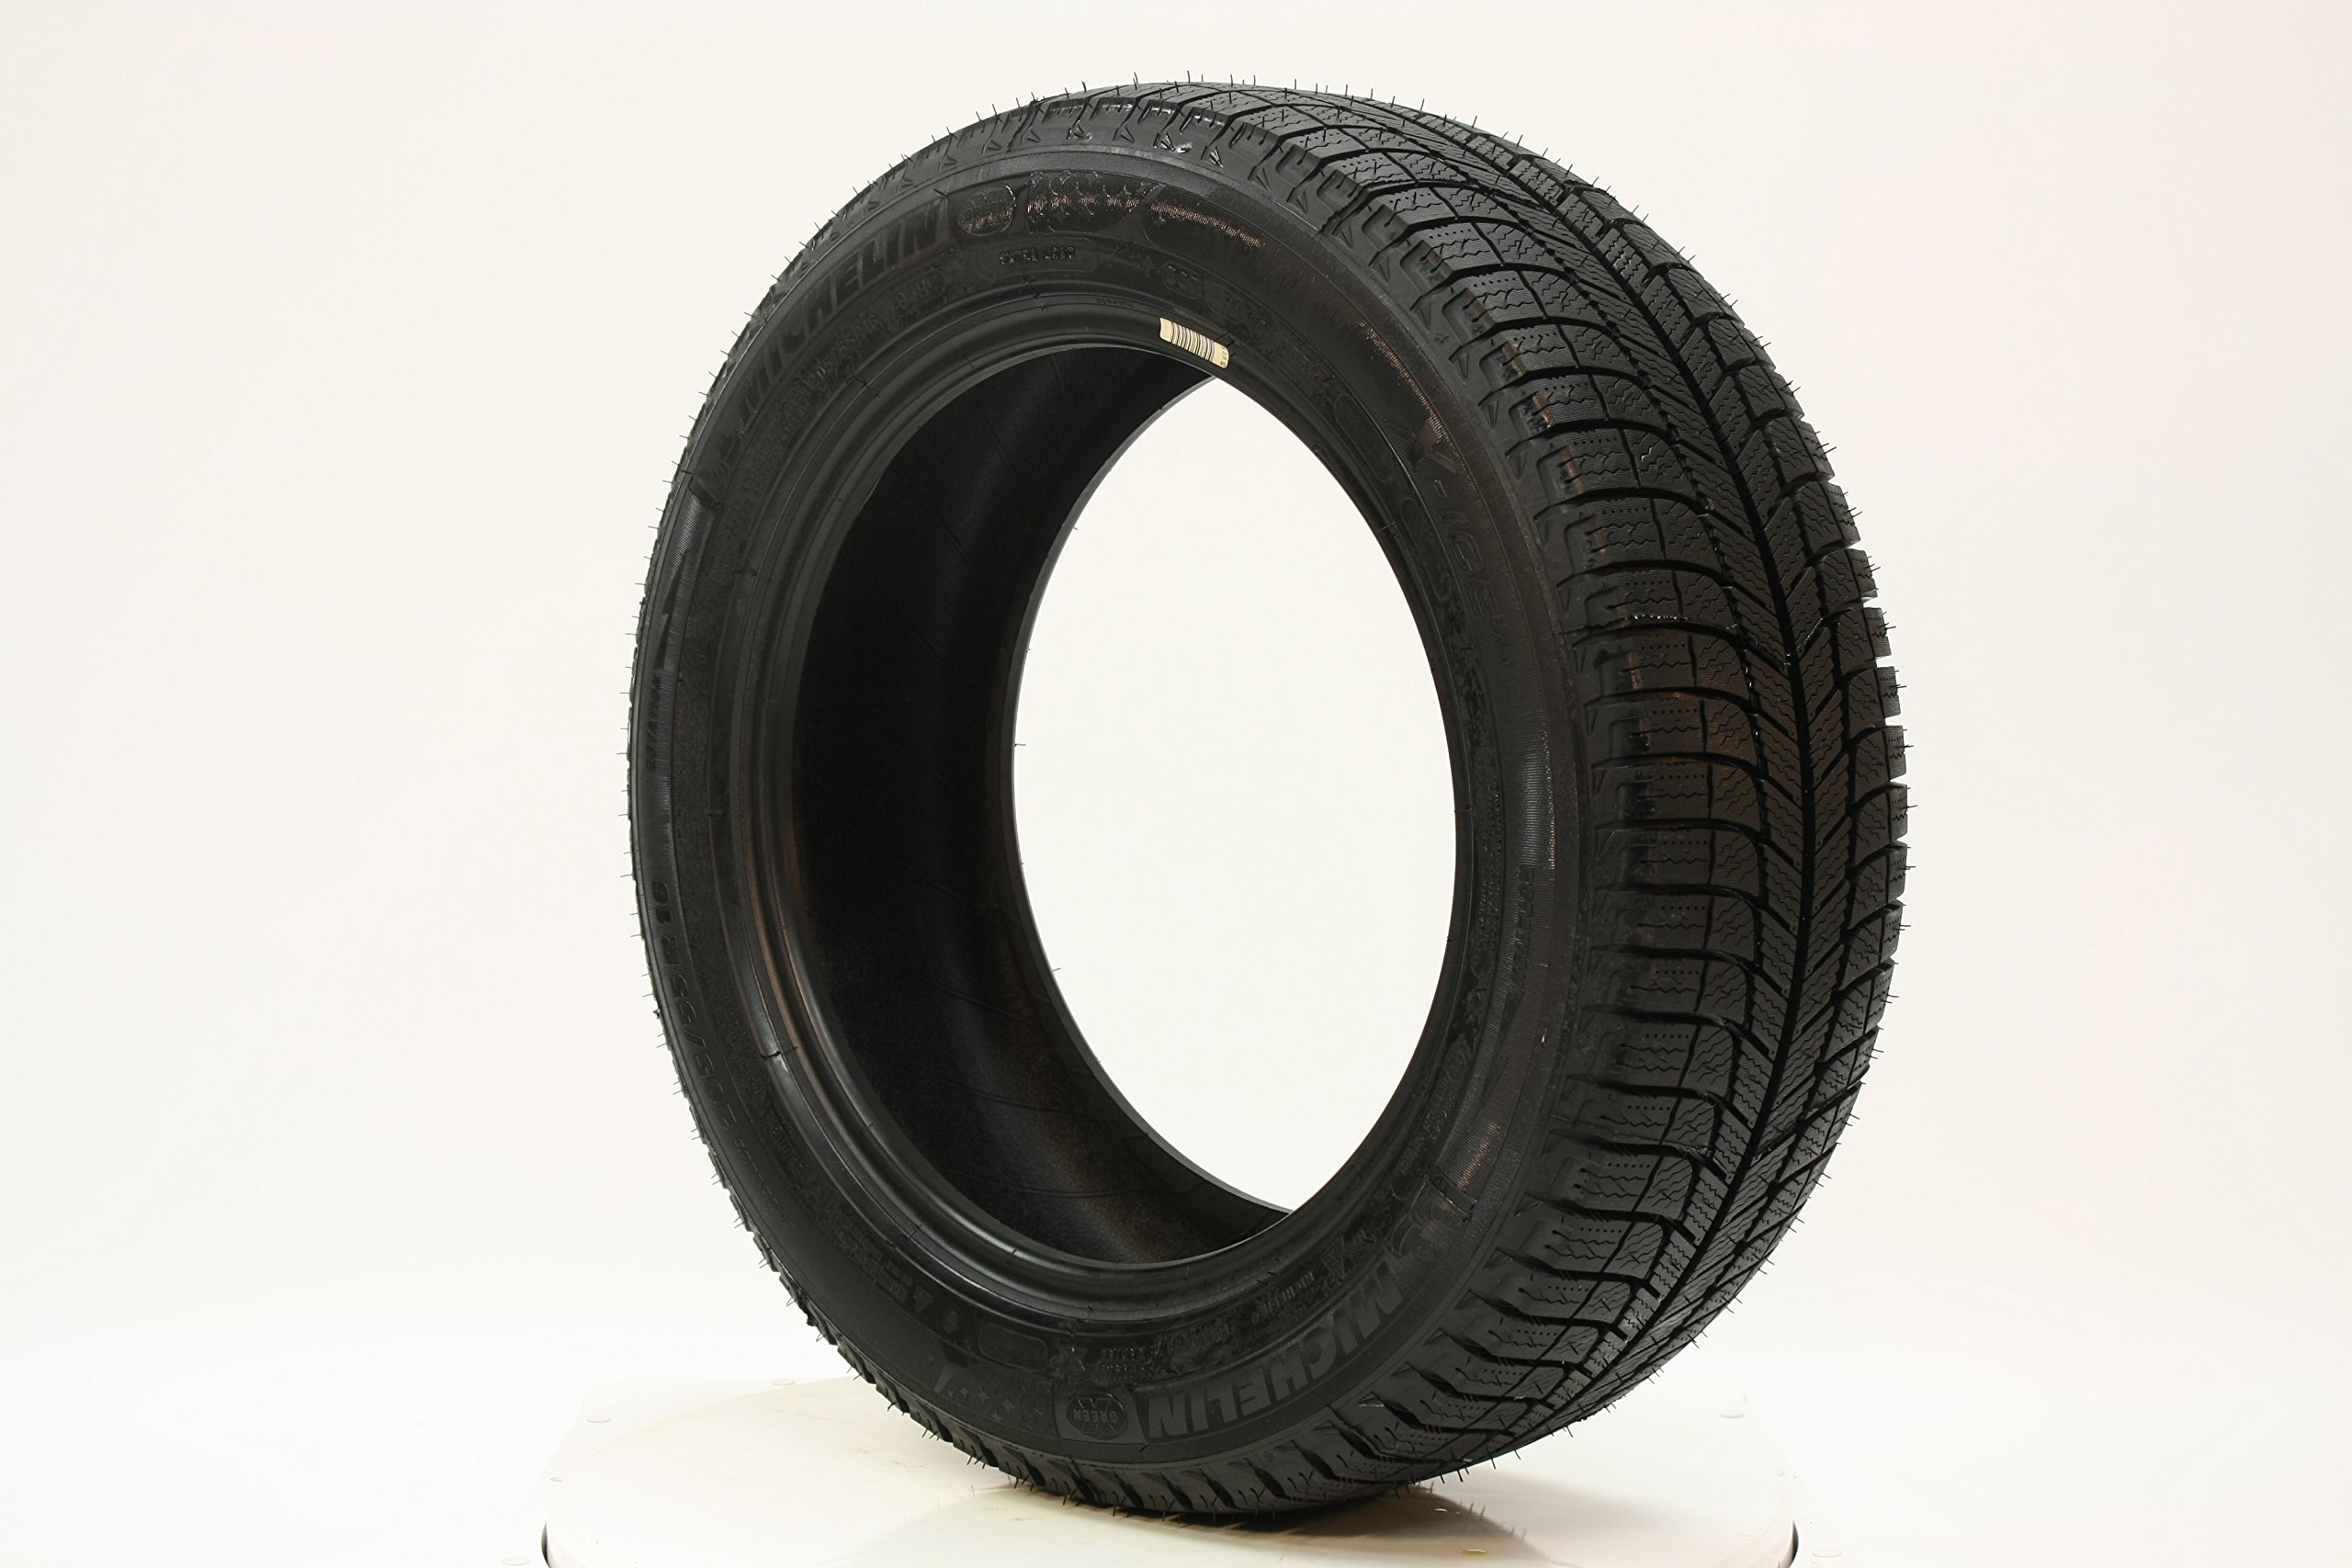 Michelin X-Ice Xi3 Winter Radial Tire - 205/60R16/XL 96H by MICHELIN